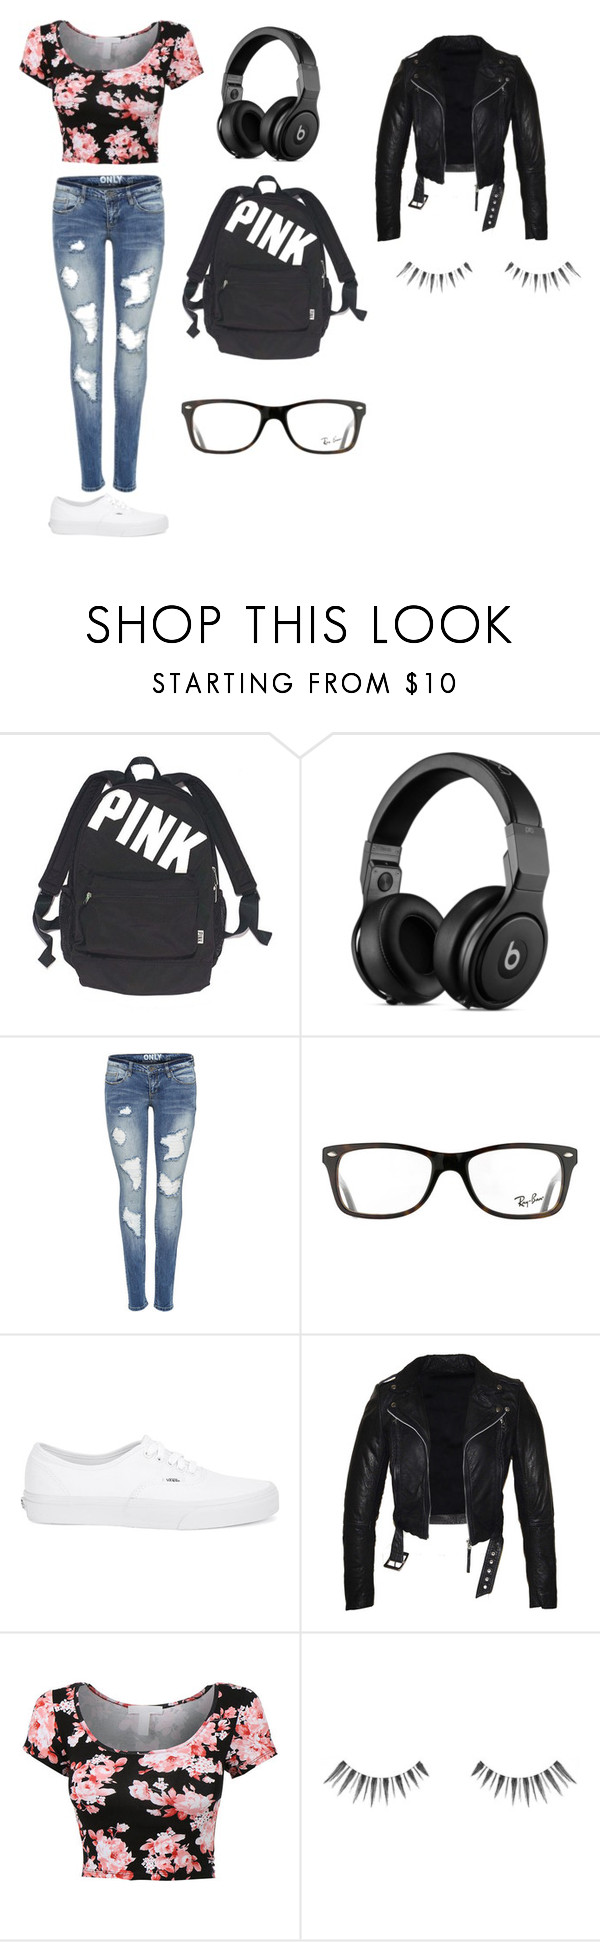 """journey journey"" by fb107247-1 on Polyvore featuring beauty, Victoria's Secret, Ray-Ban and Vans"